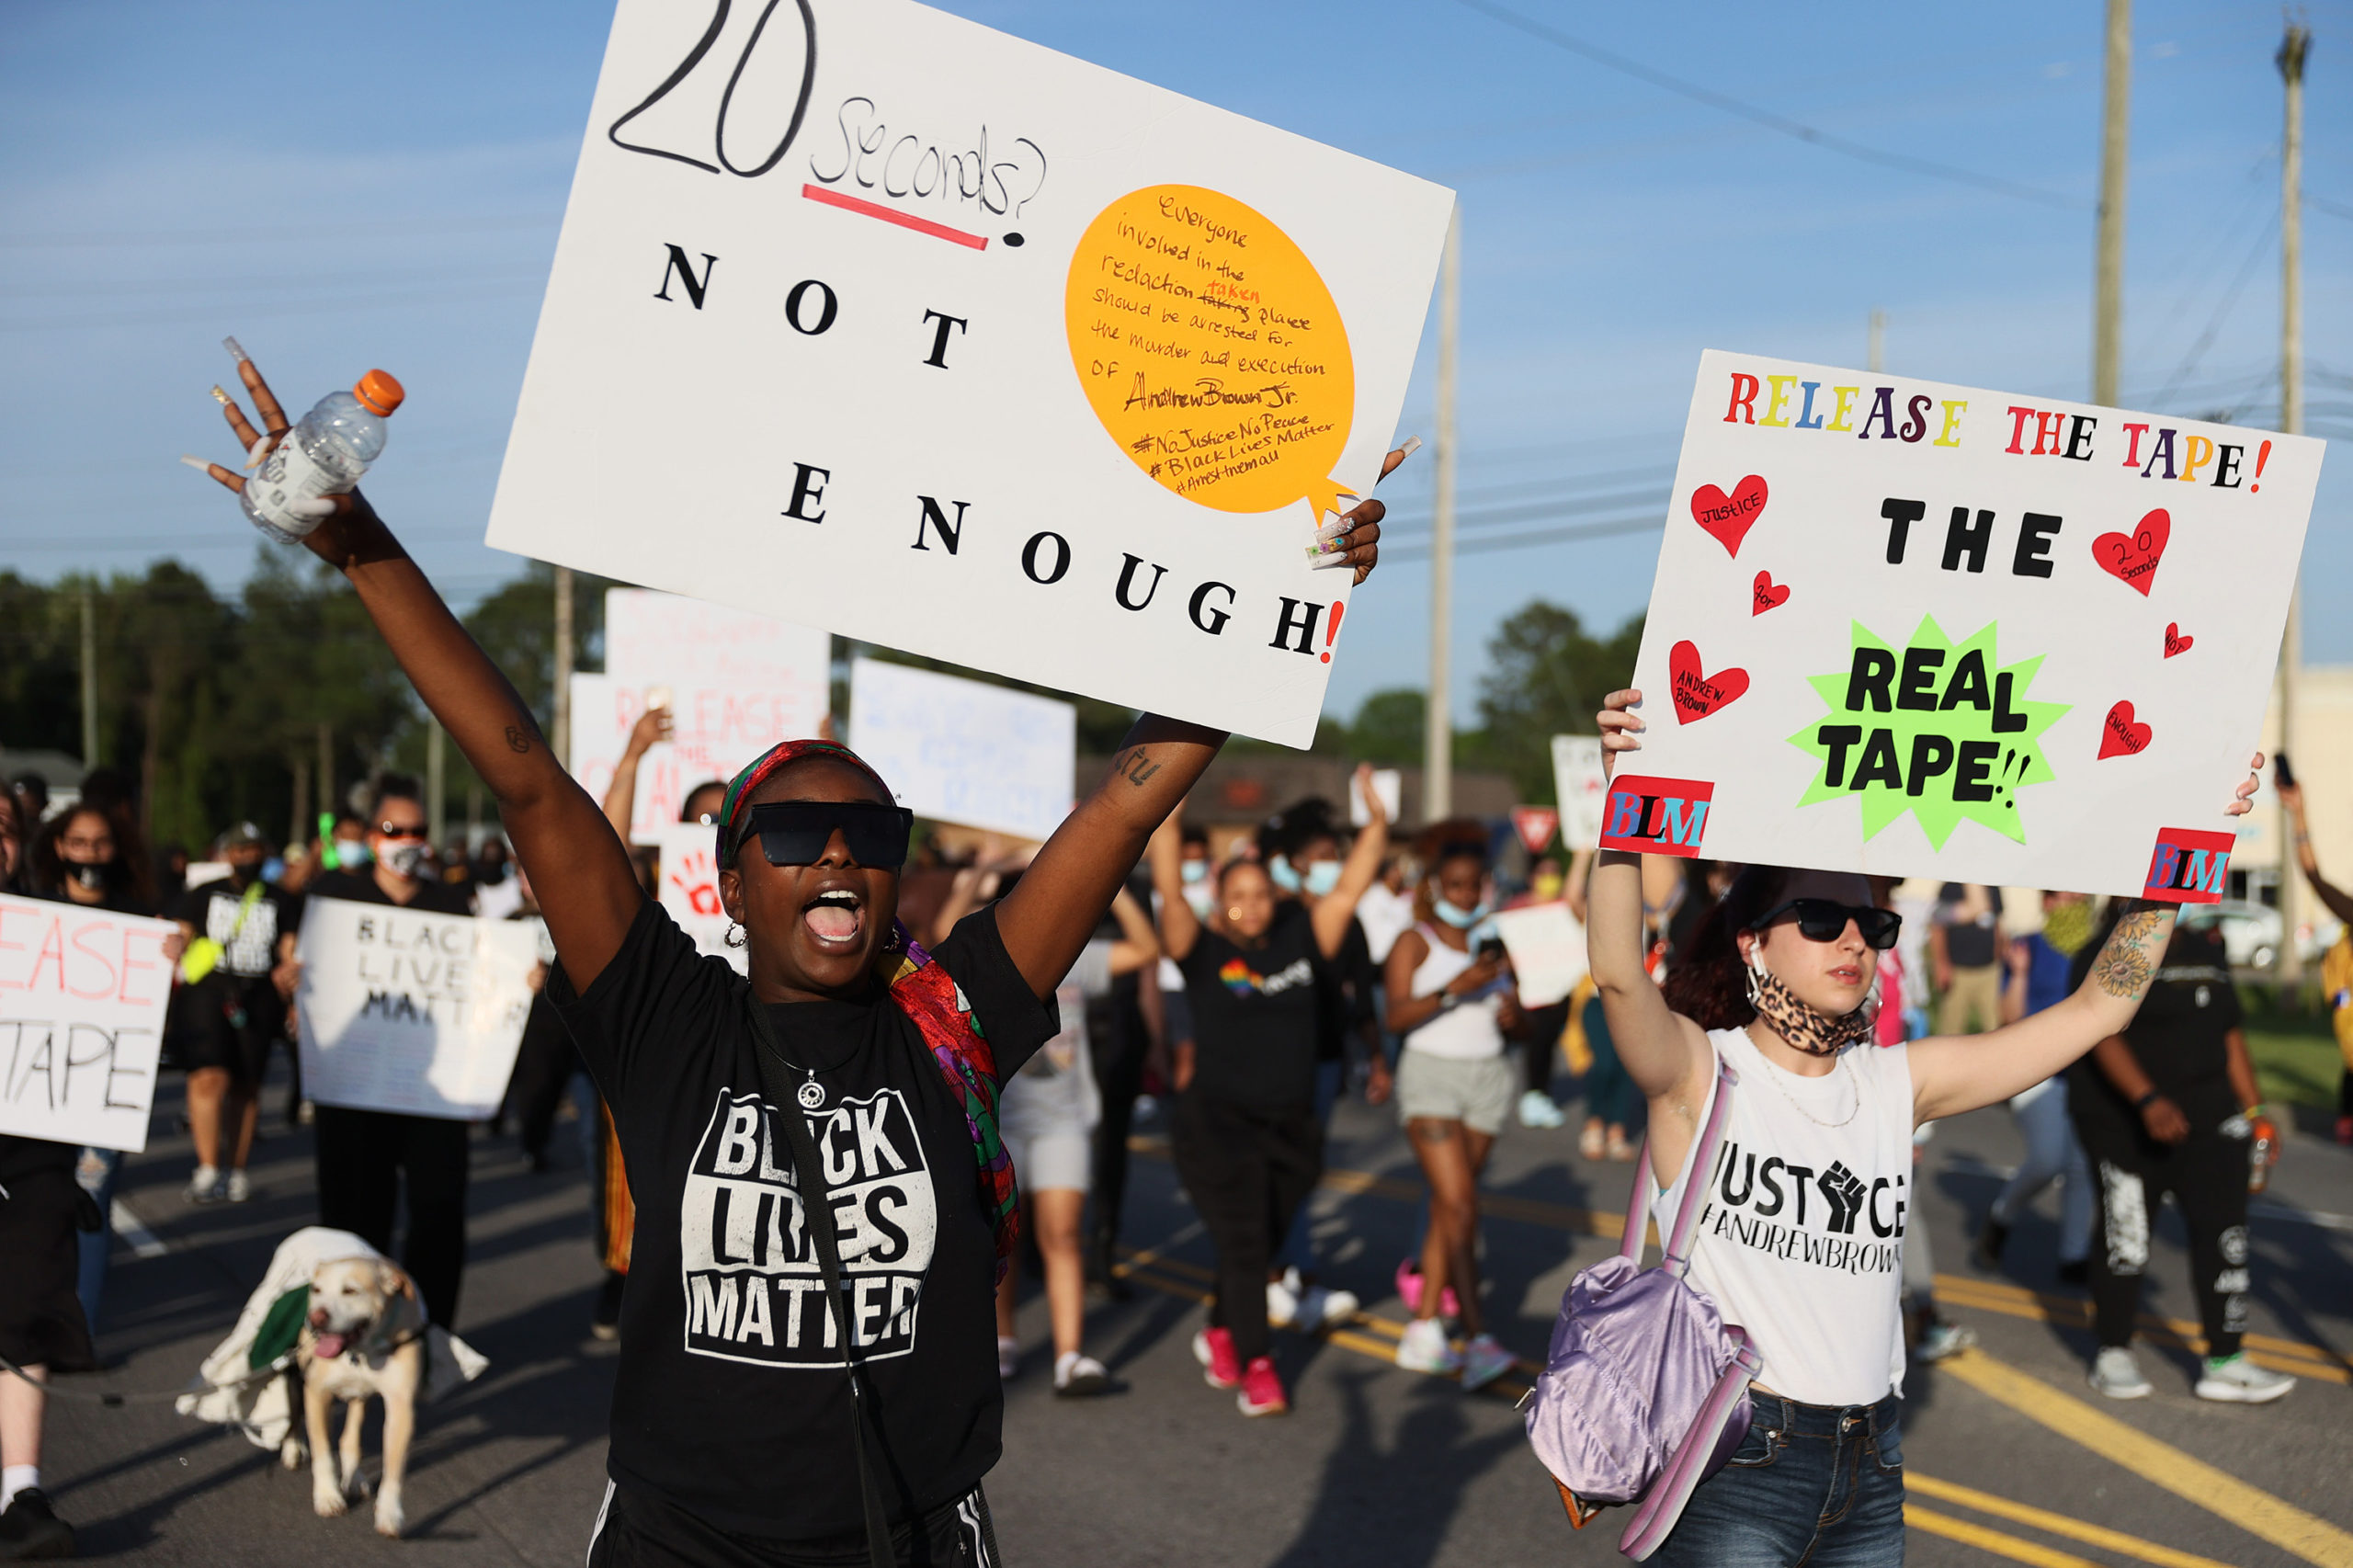 \Protesters march through the street calling for justice after the death of Andrew Brown Jr. on April 27, 2021 in Elizabeth City, North Carolina. (Photo by Joe Raedle/Getty Images)